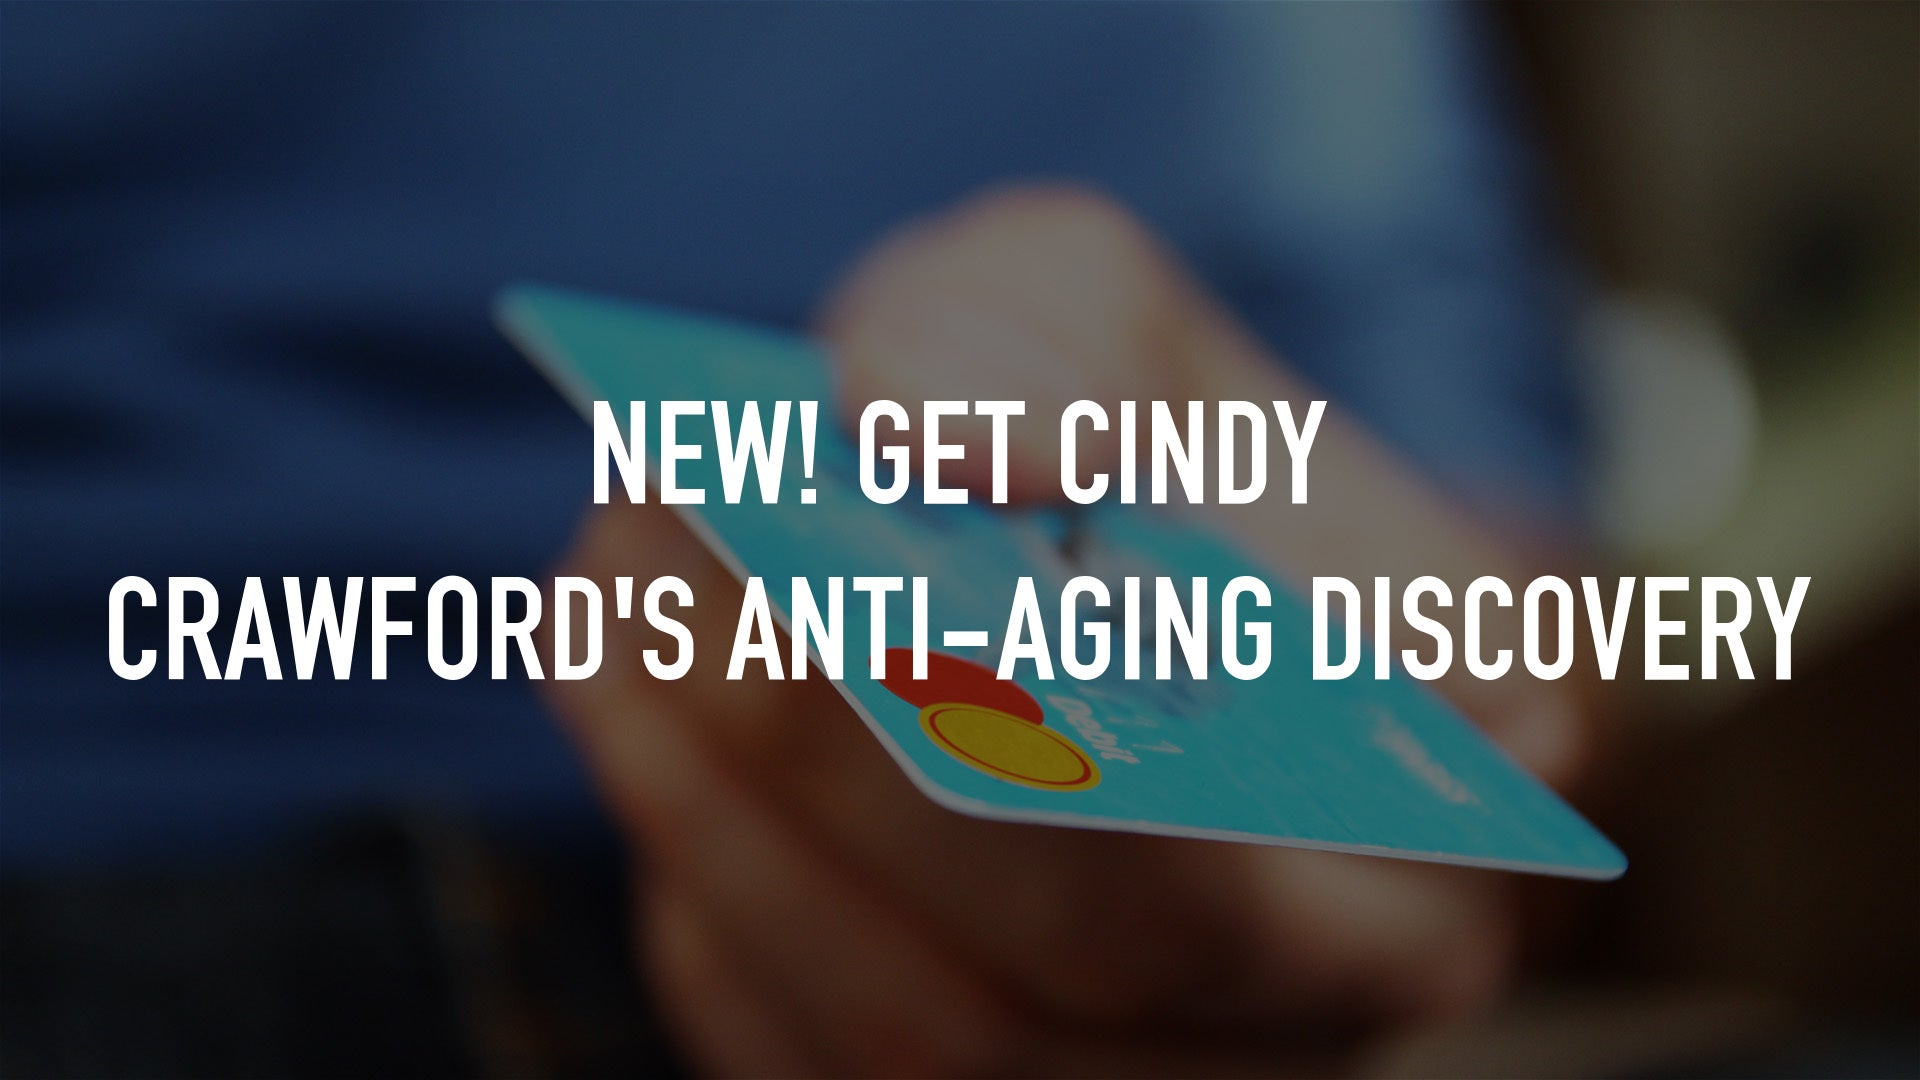 New! Get Cindy Crawford's anti-aging discovery